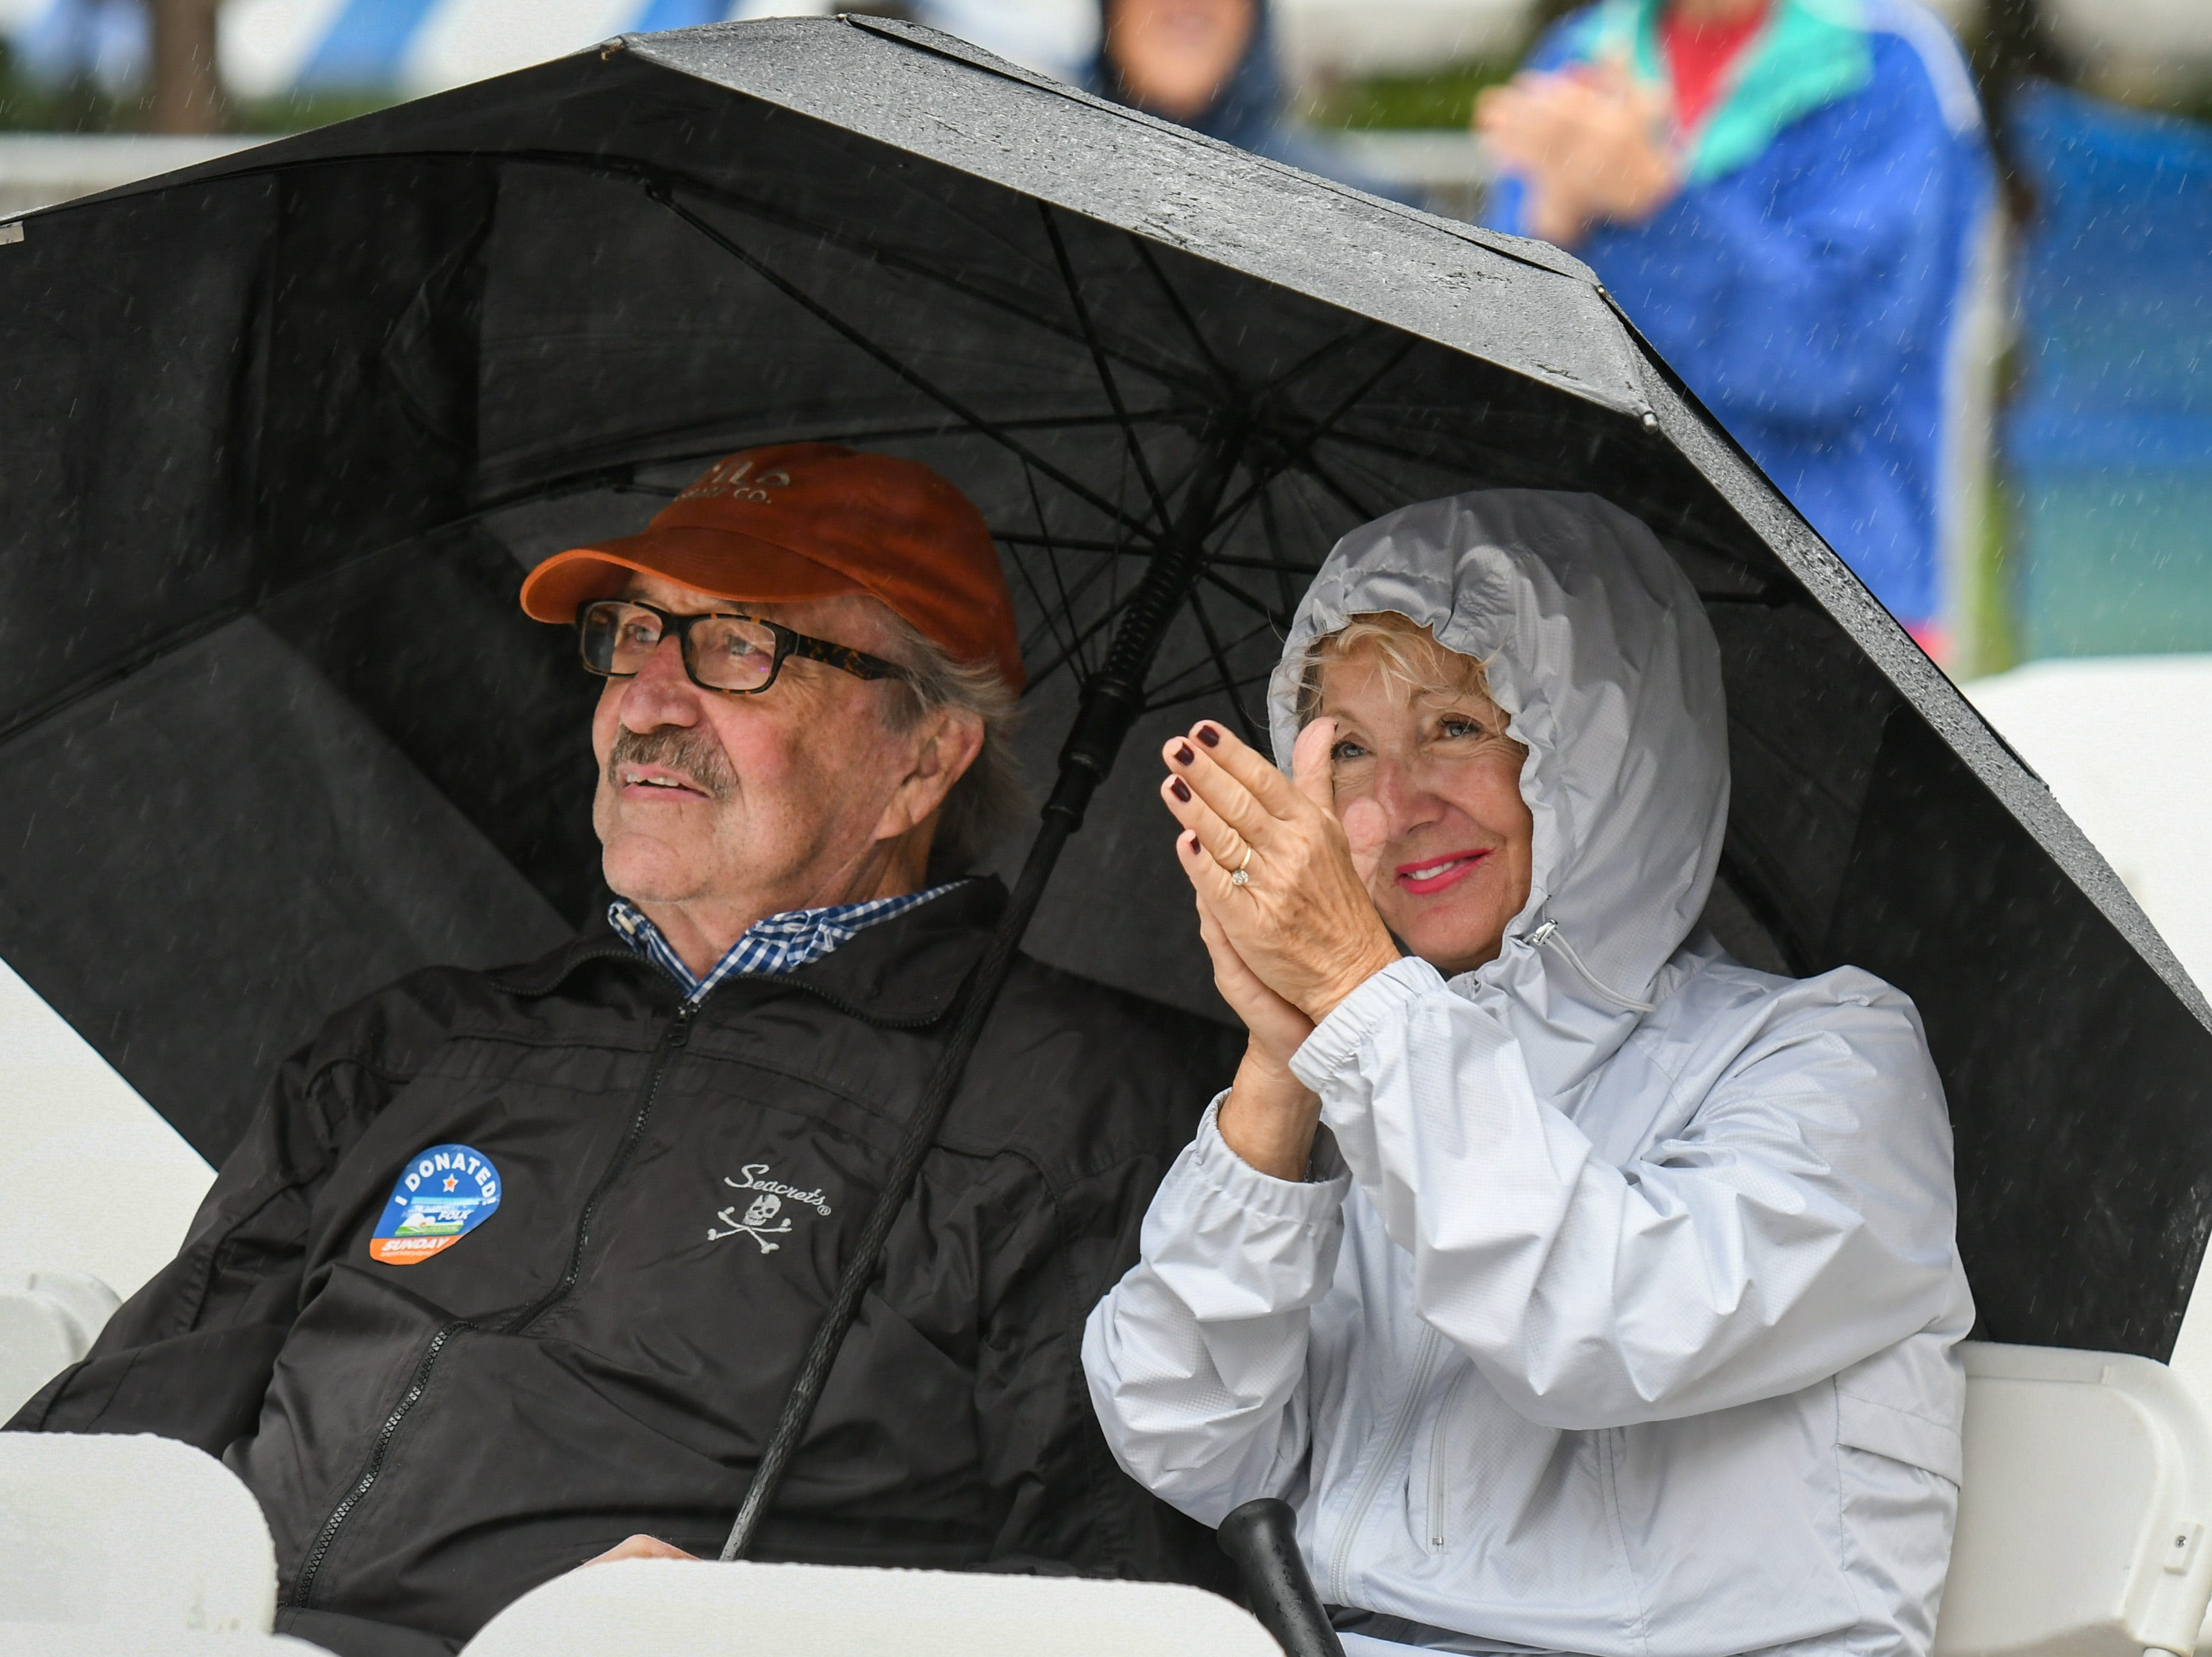 Attendees cheer for Mangum & Company from the rain at the National Folk Fest in Salisbury on Sunday, Sept. 9.